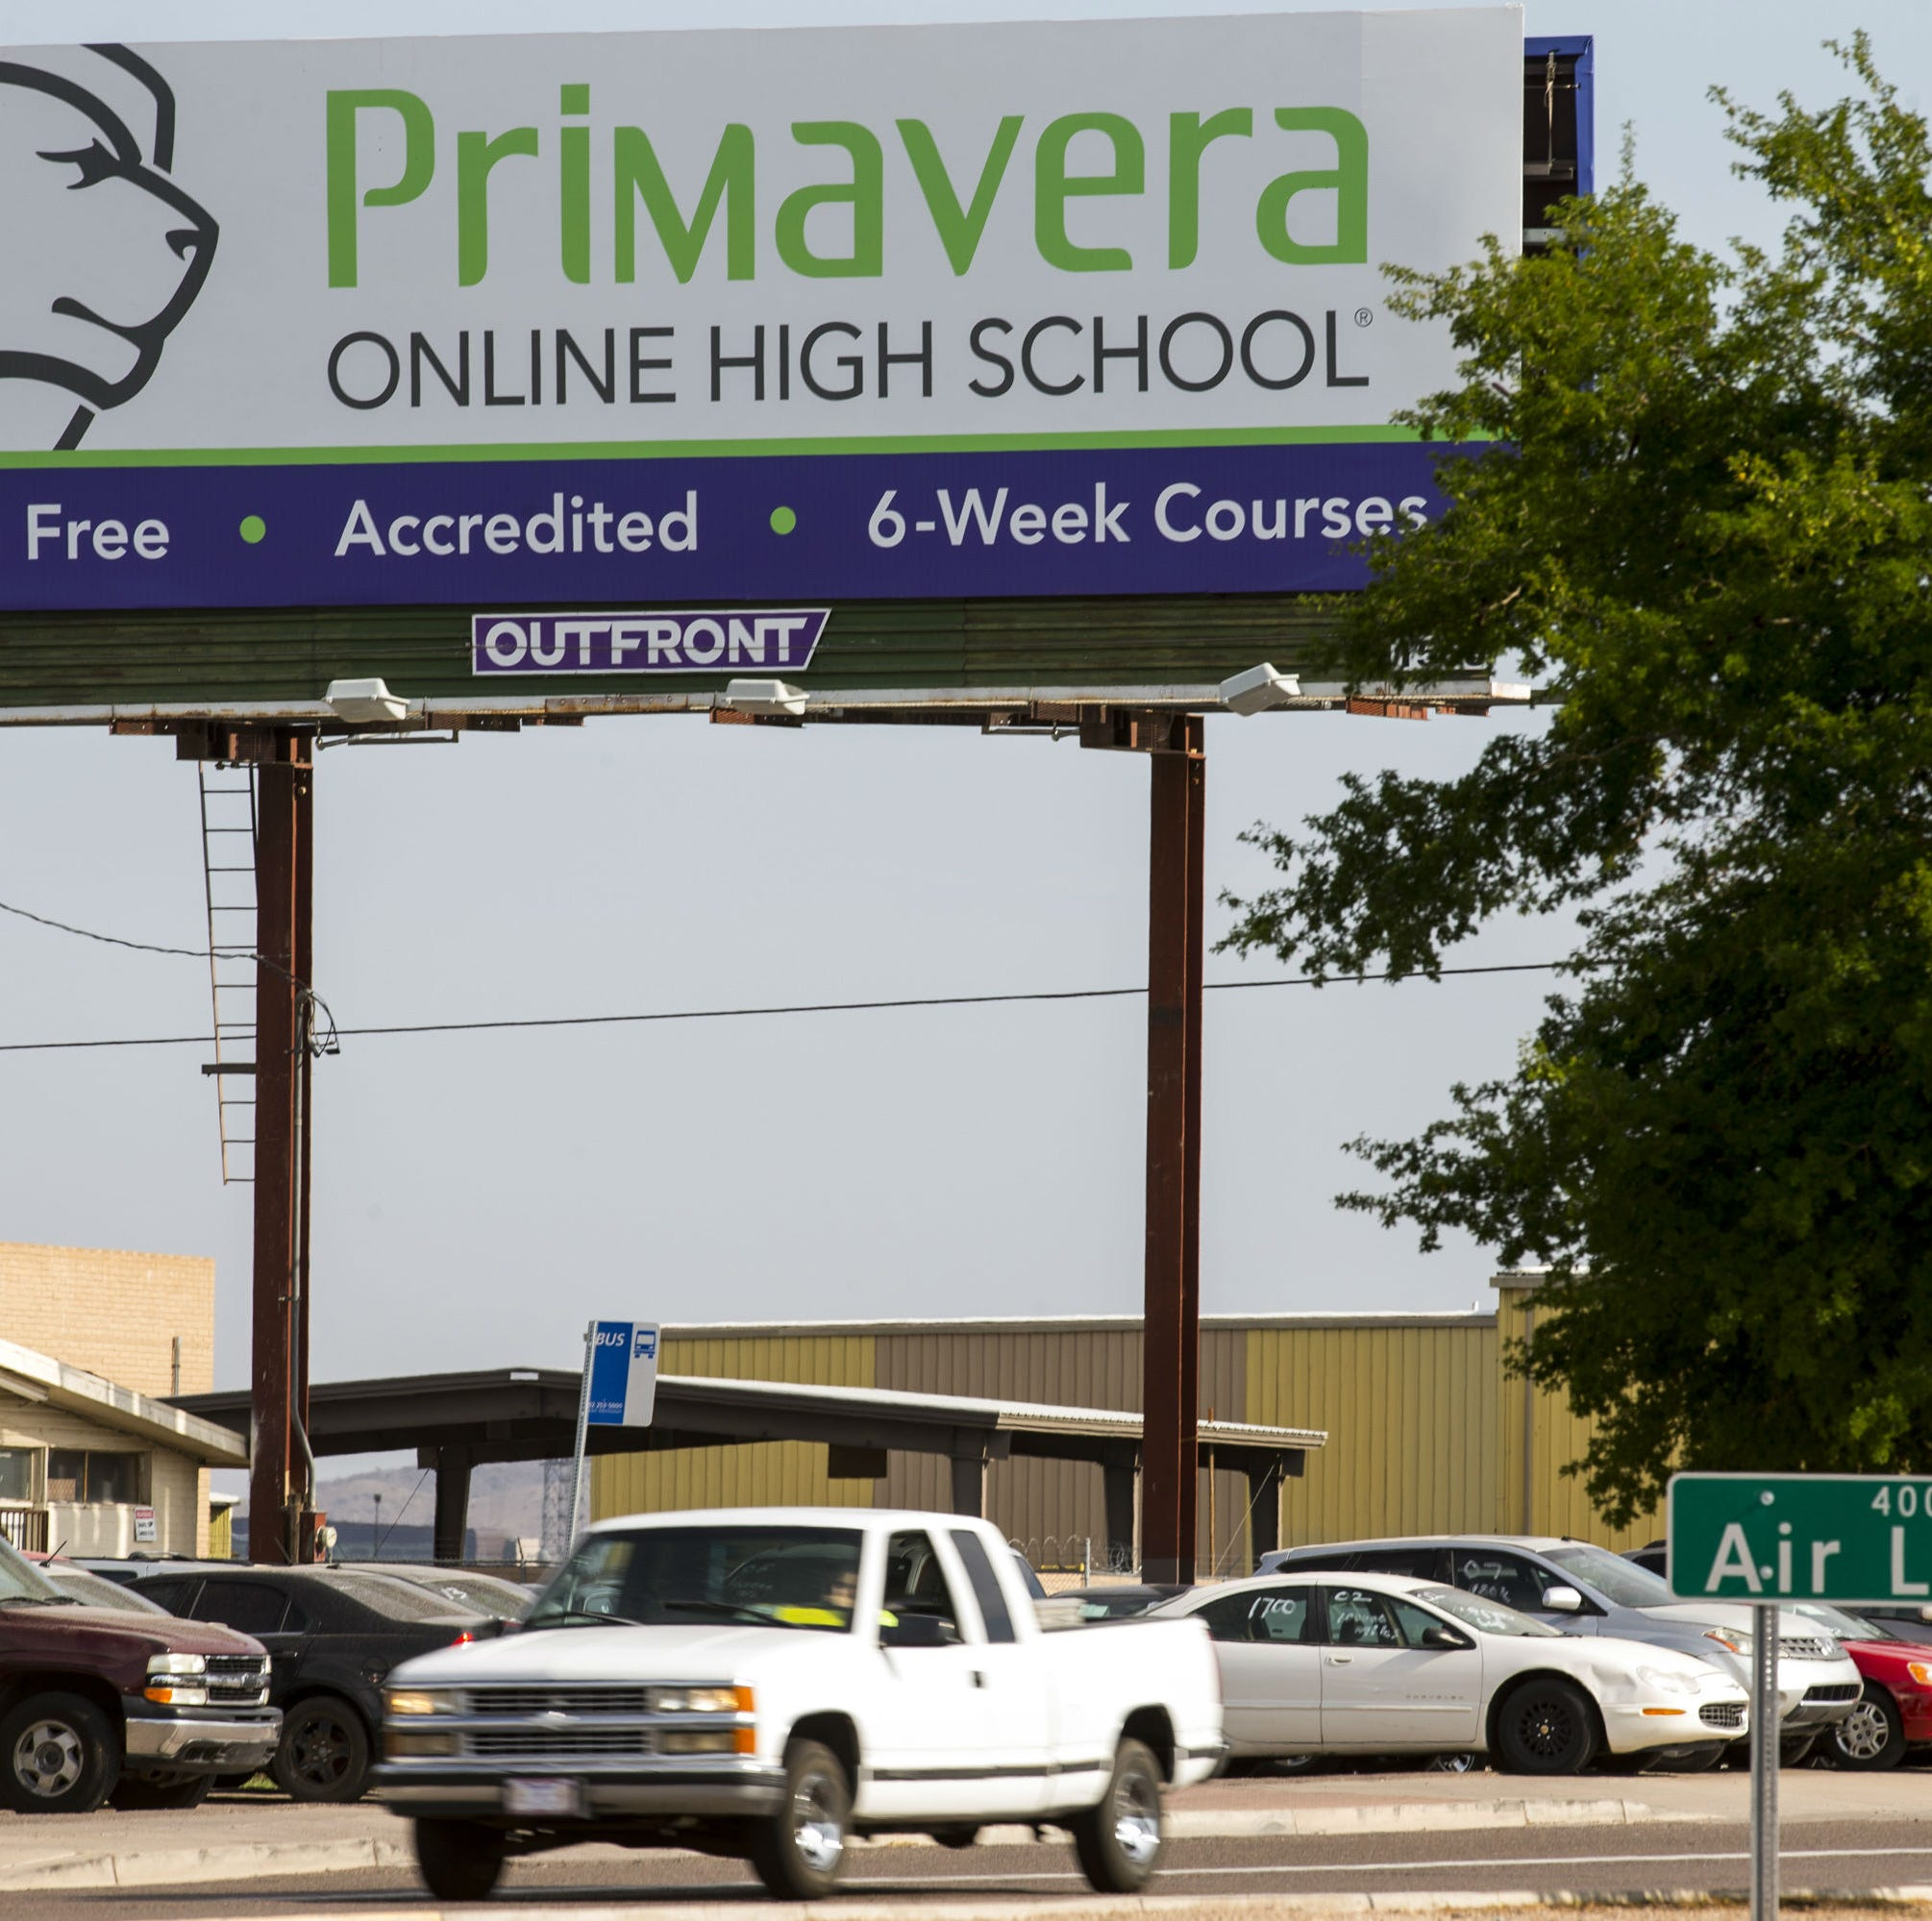 Primavera fails many of its students. So, naturally, it gets to open another charter school